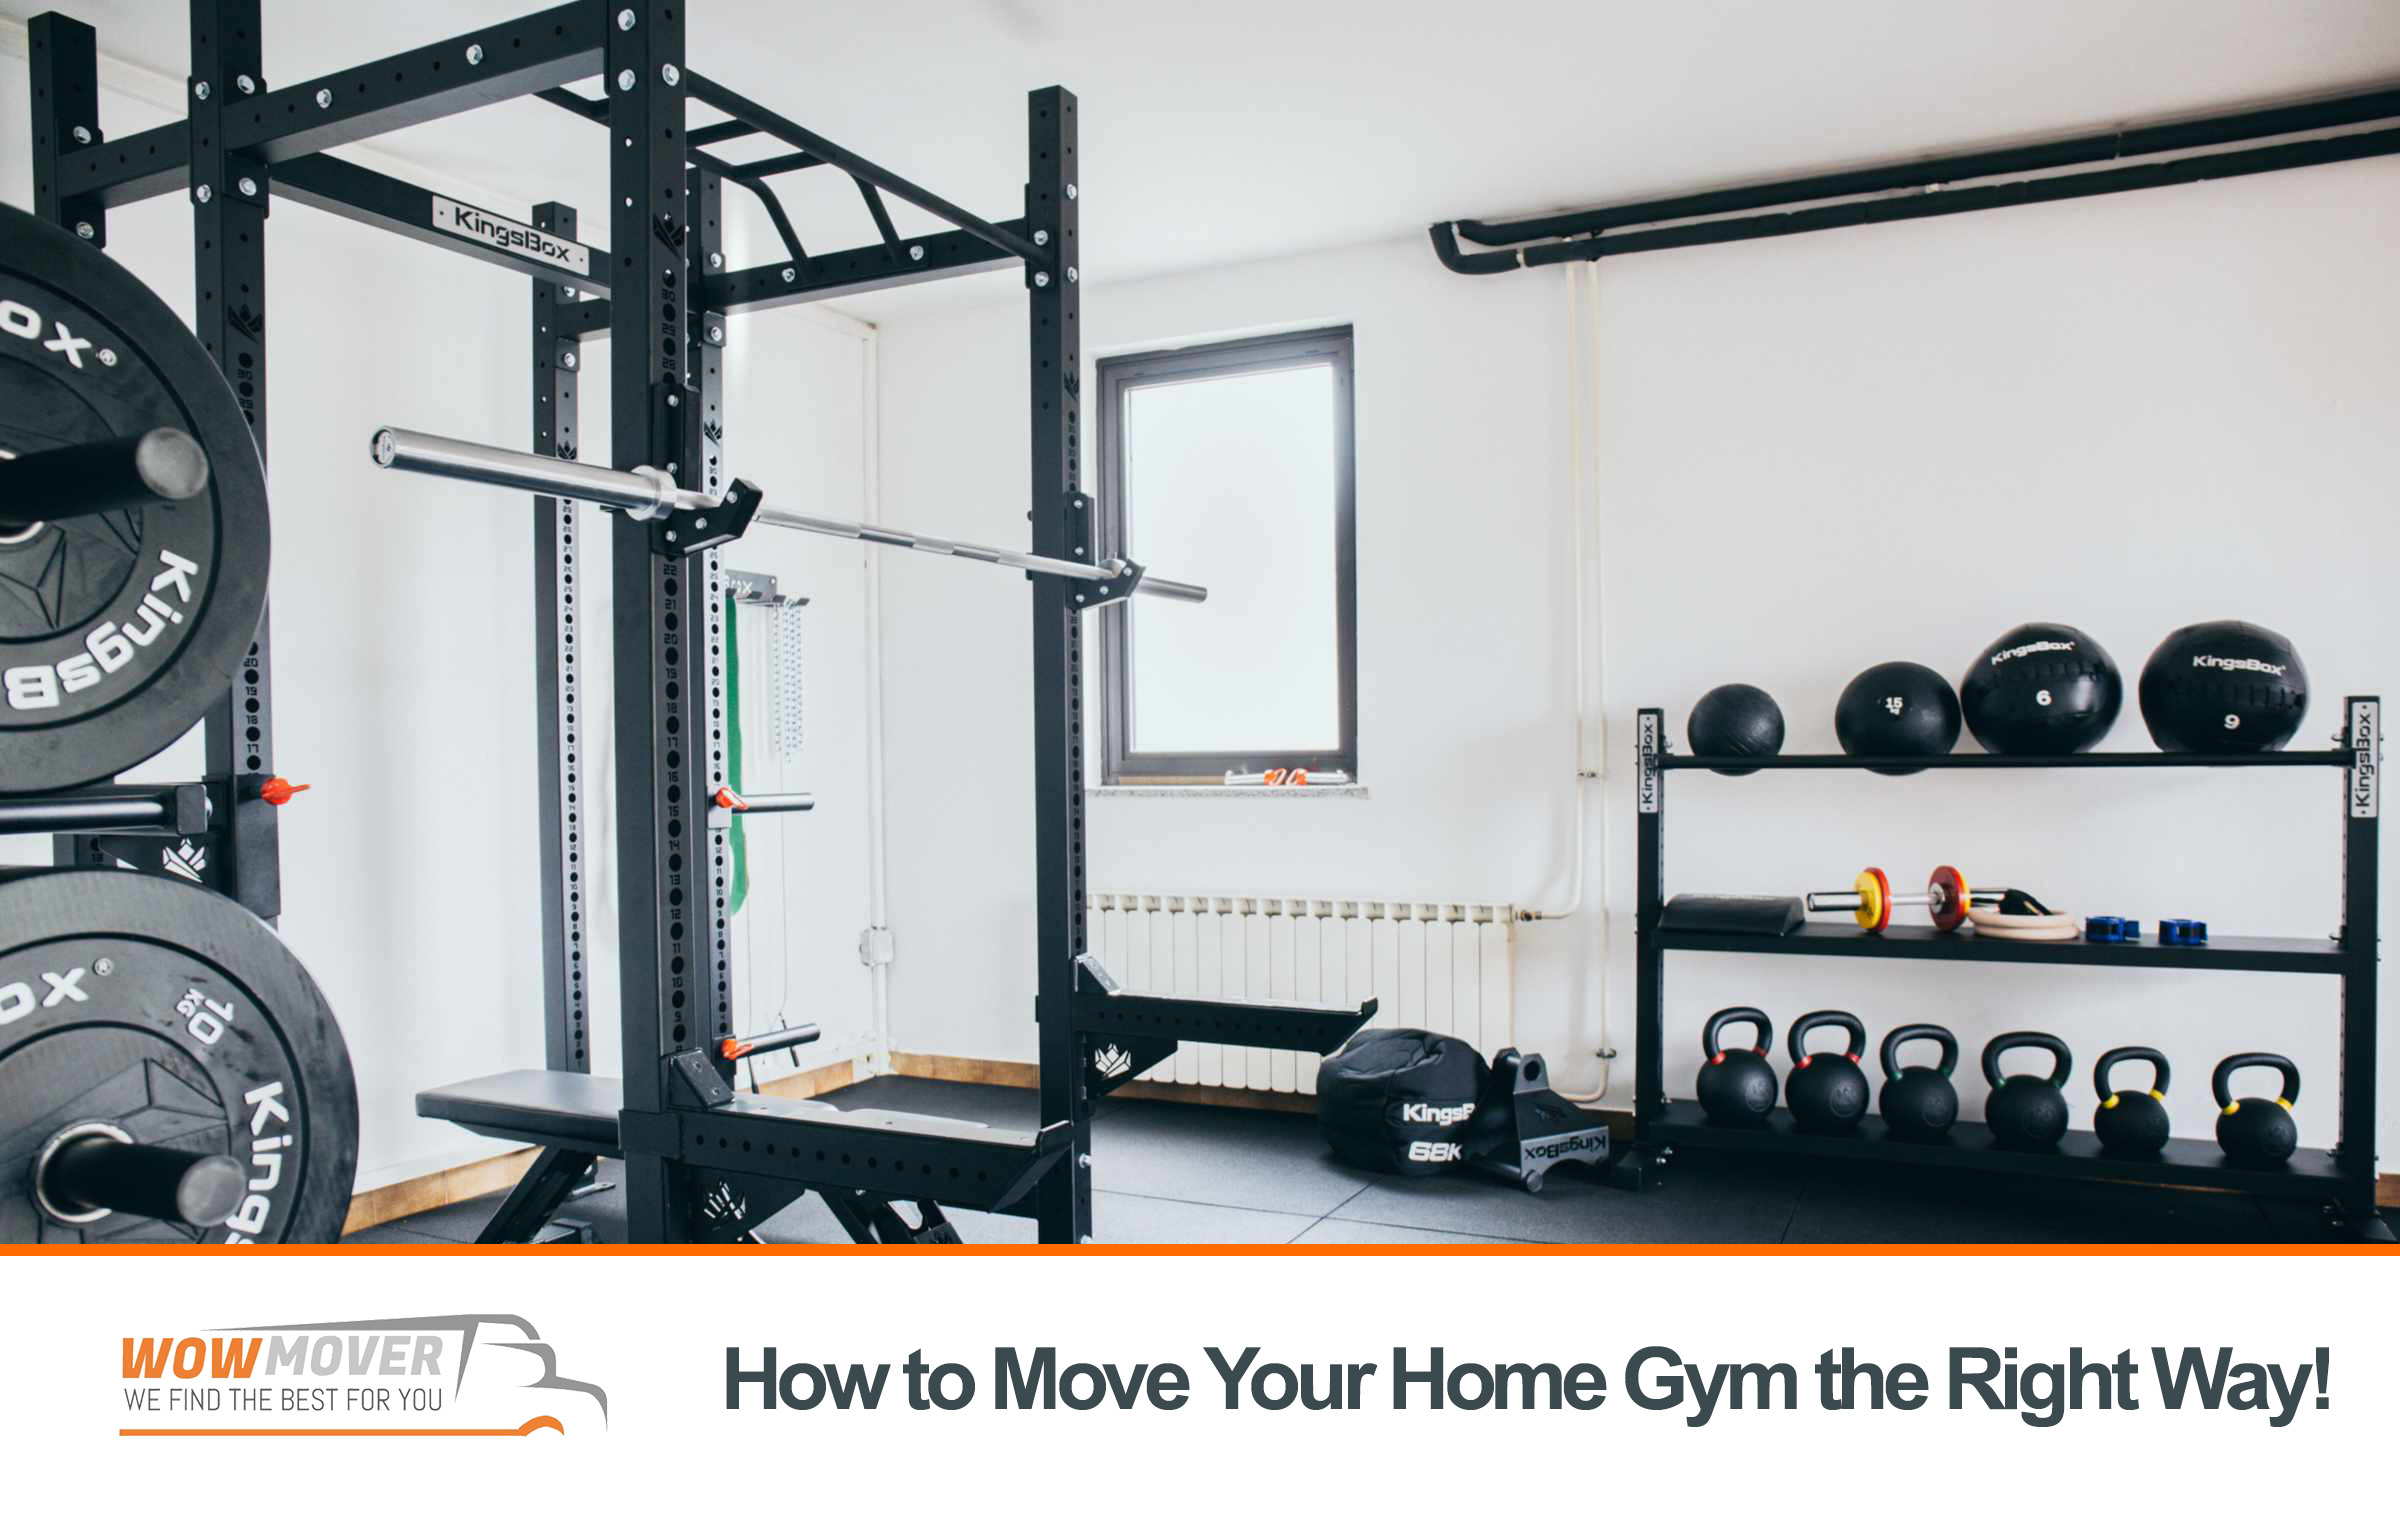 How to Move Your Home Gym the Right Way!